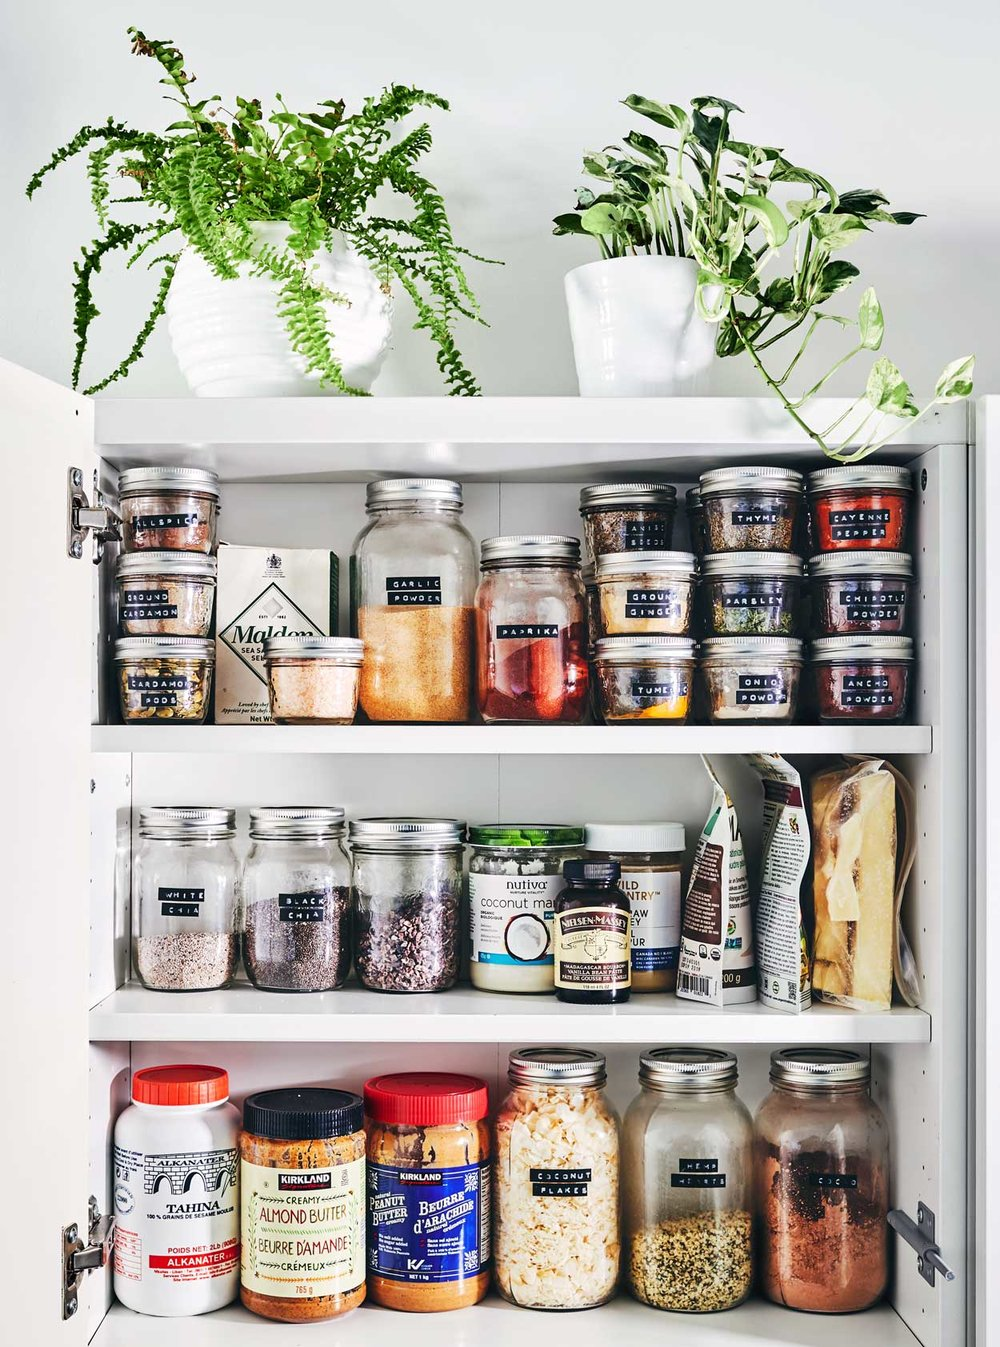 Our Pantry - The key to a healthy, inspired kitchen is an organized one. While your pantry doesn't need to be fully-stocked at all times, having a reliable set of go-to ingredients will at least enable you to throw a basic meal together. It'll also reduce your last minute trips to the grocery store, allow you to take advantage of sales (because it's fine to buy extras when you know you'll actually use it) - and ultimately, your pantry will become one less reason why you just can't cook dinner tonight.Included below are items we stock in our pantry, tips on how to buy/prepare them, and specific brands we'd recommend.Check it out here→